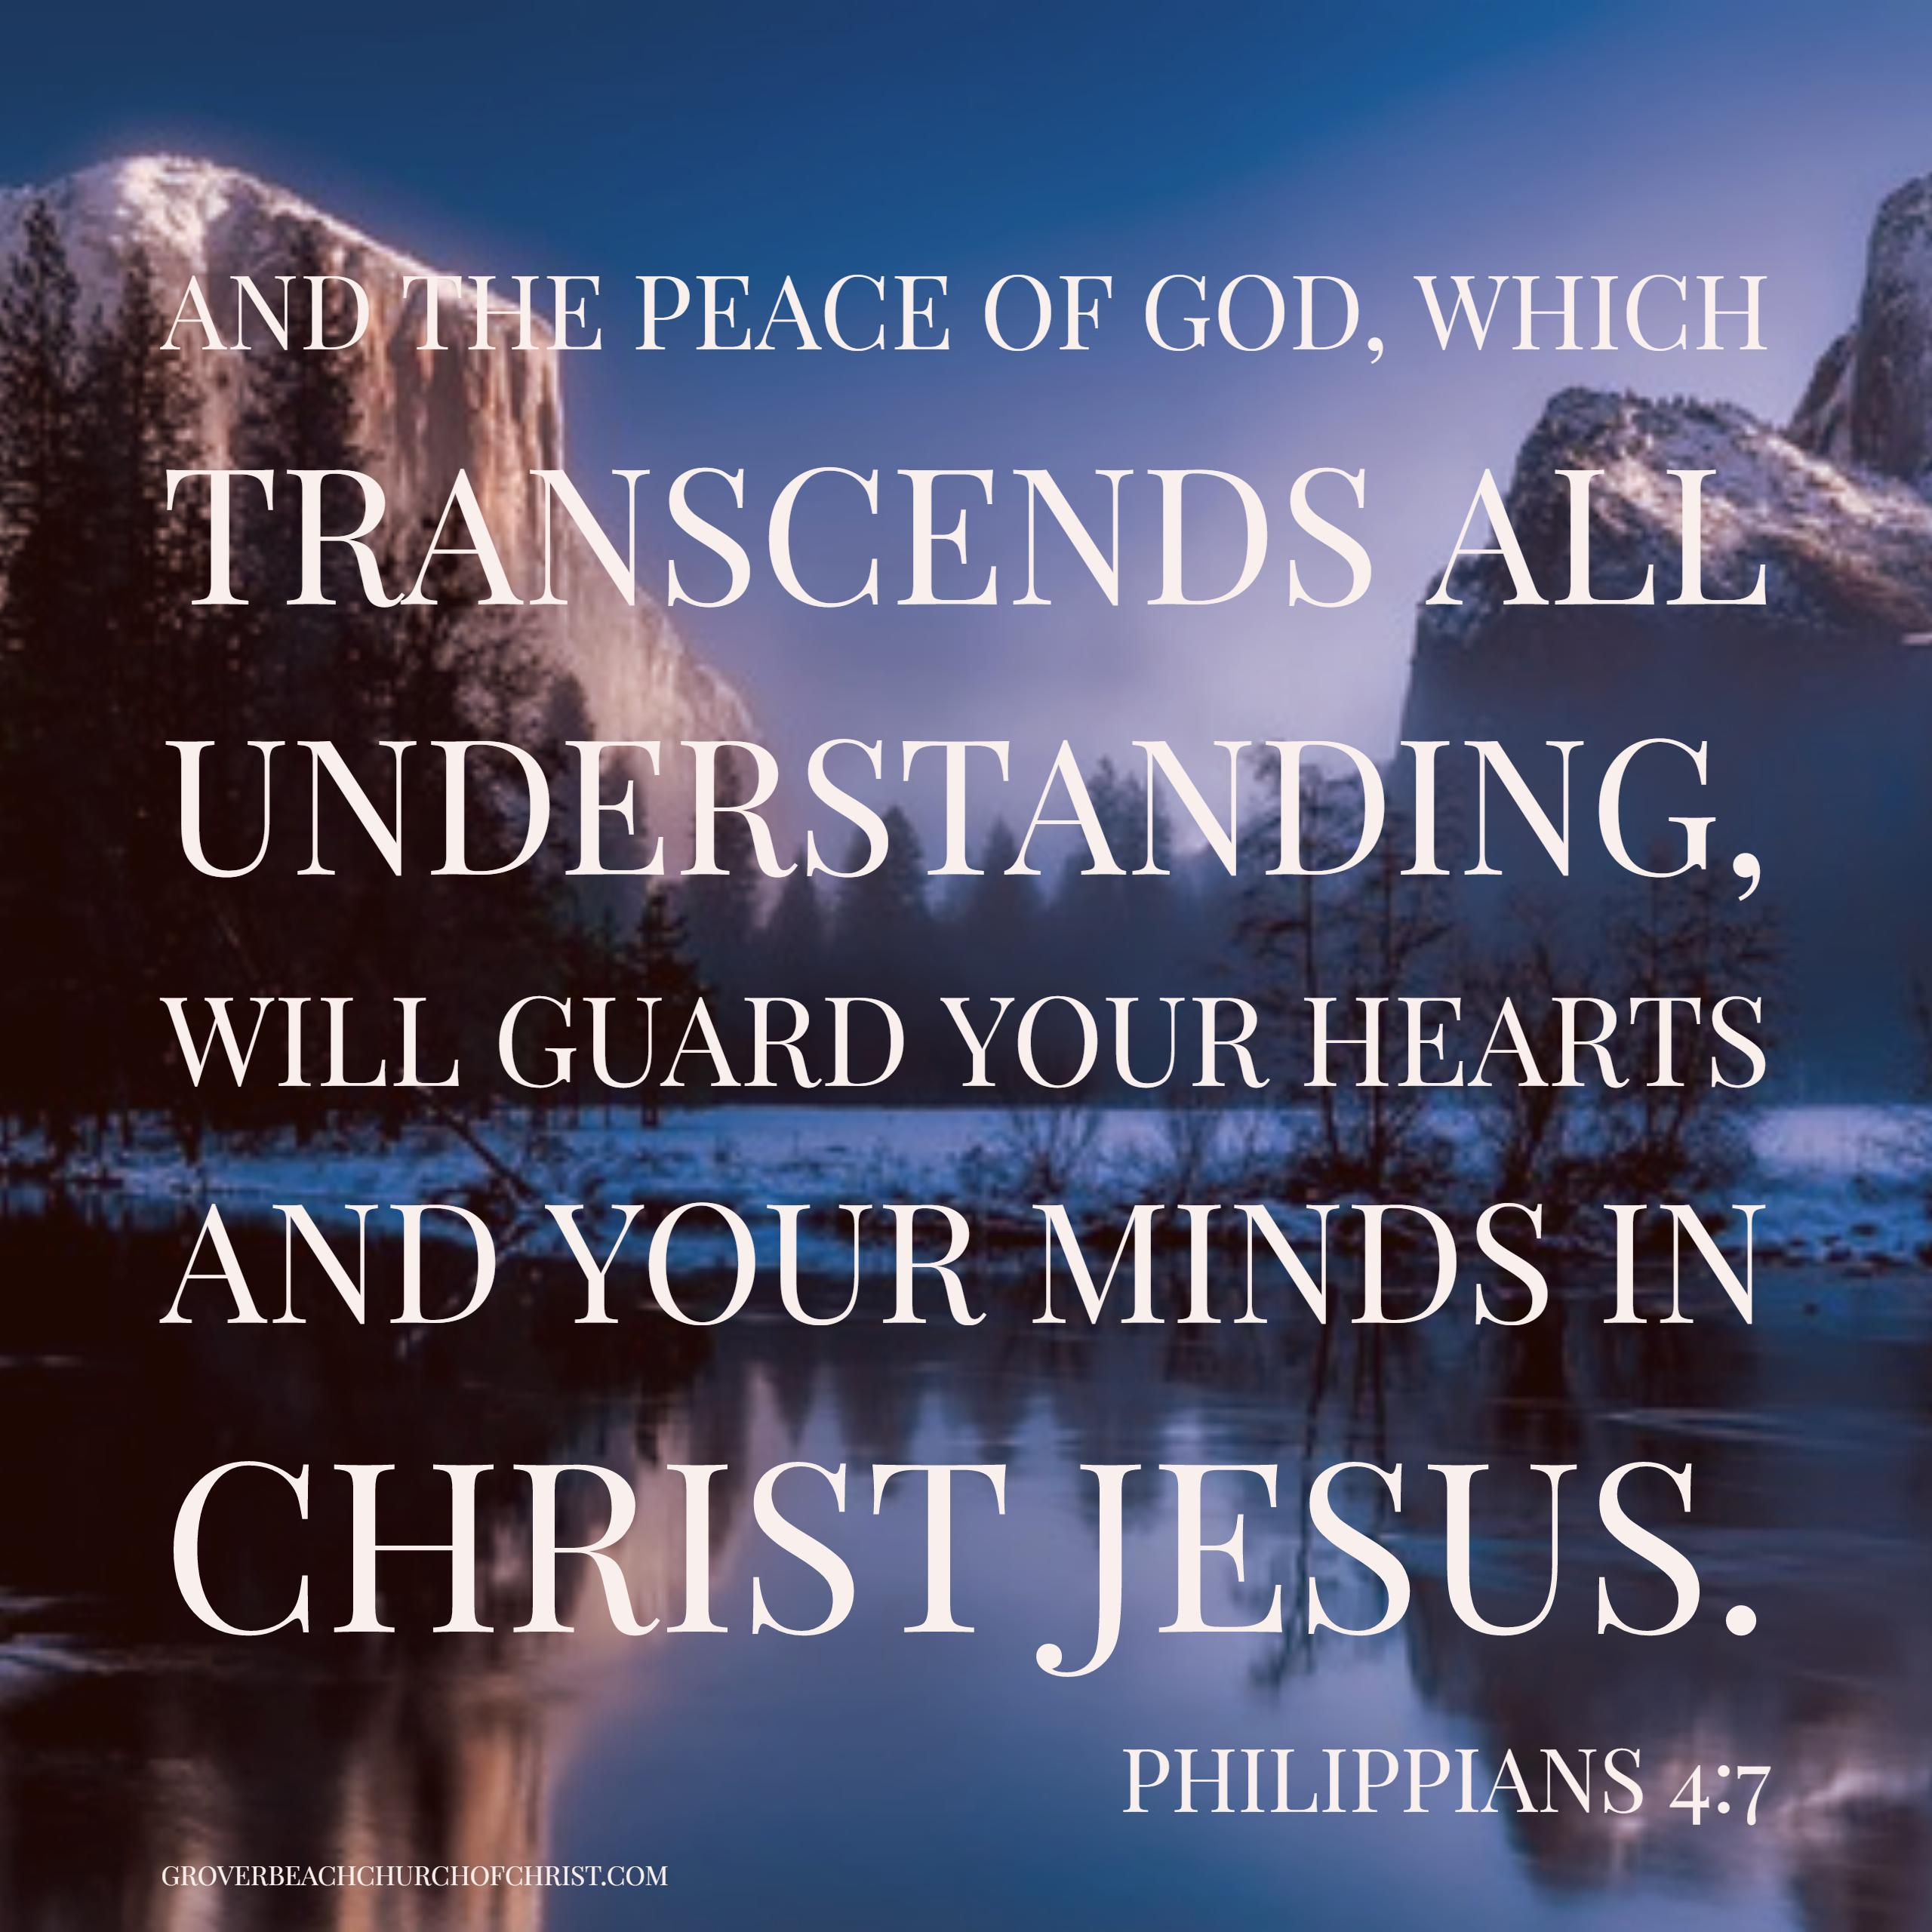 Philippians 4:17 And the peace of God